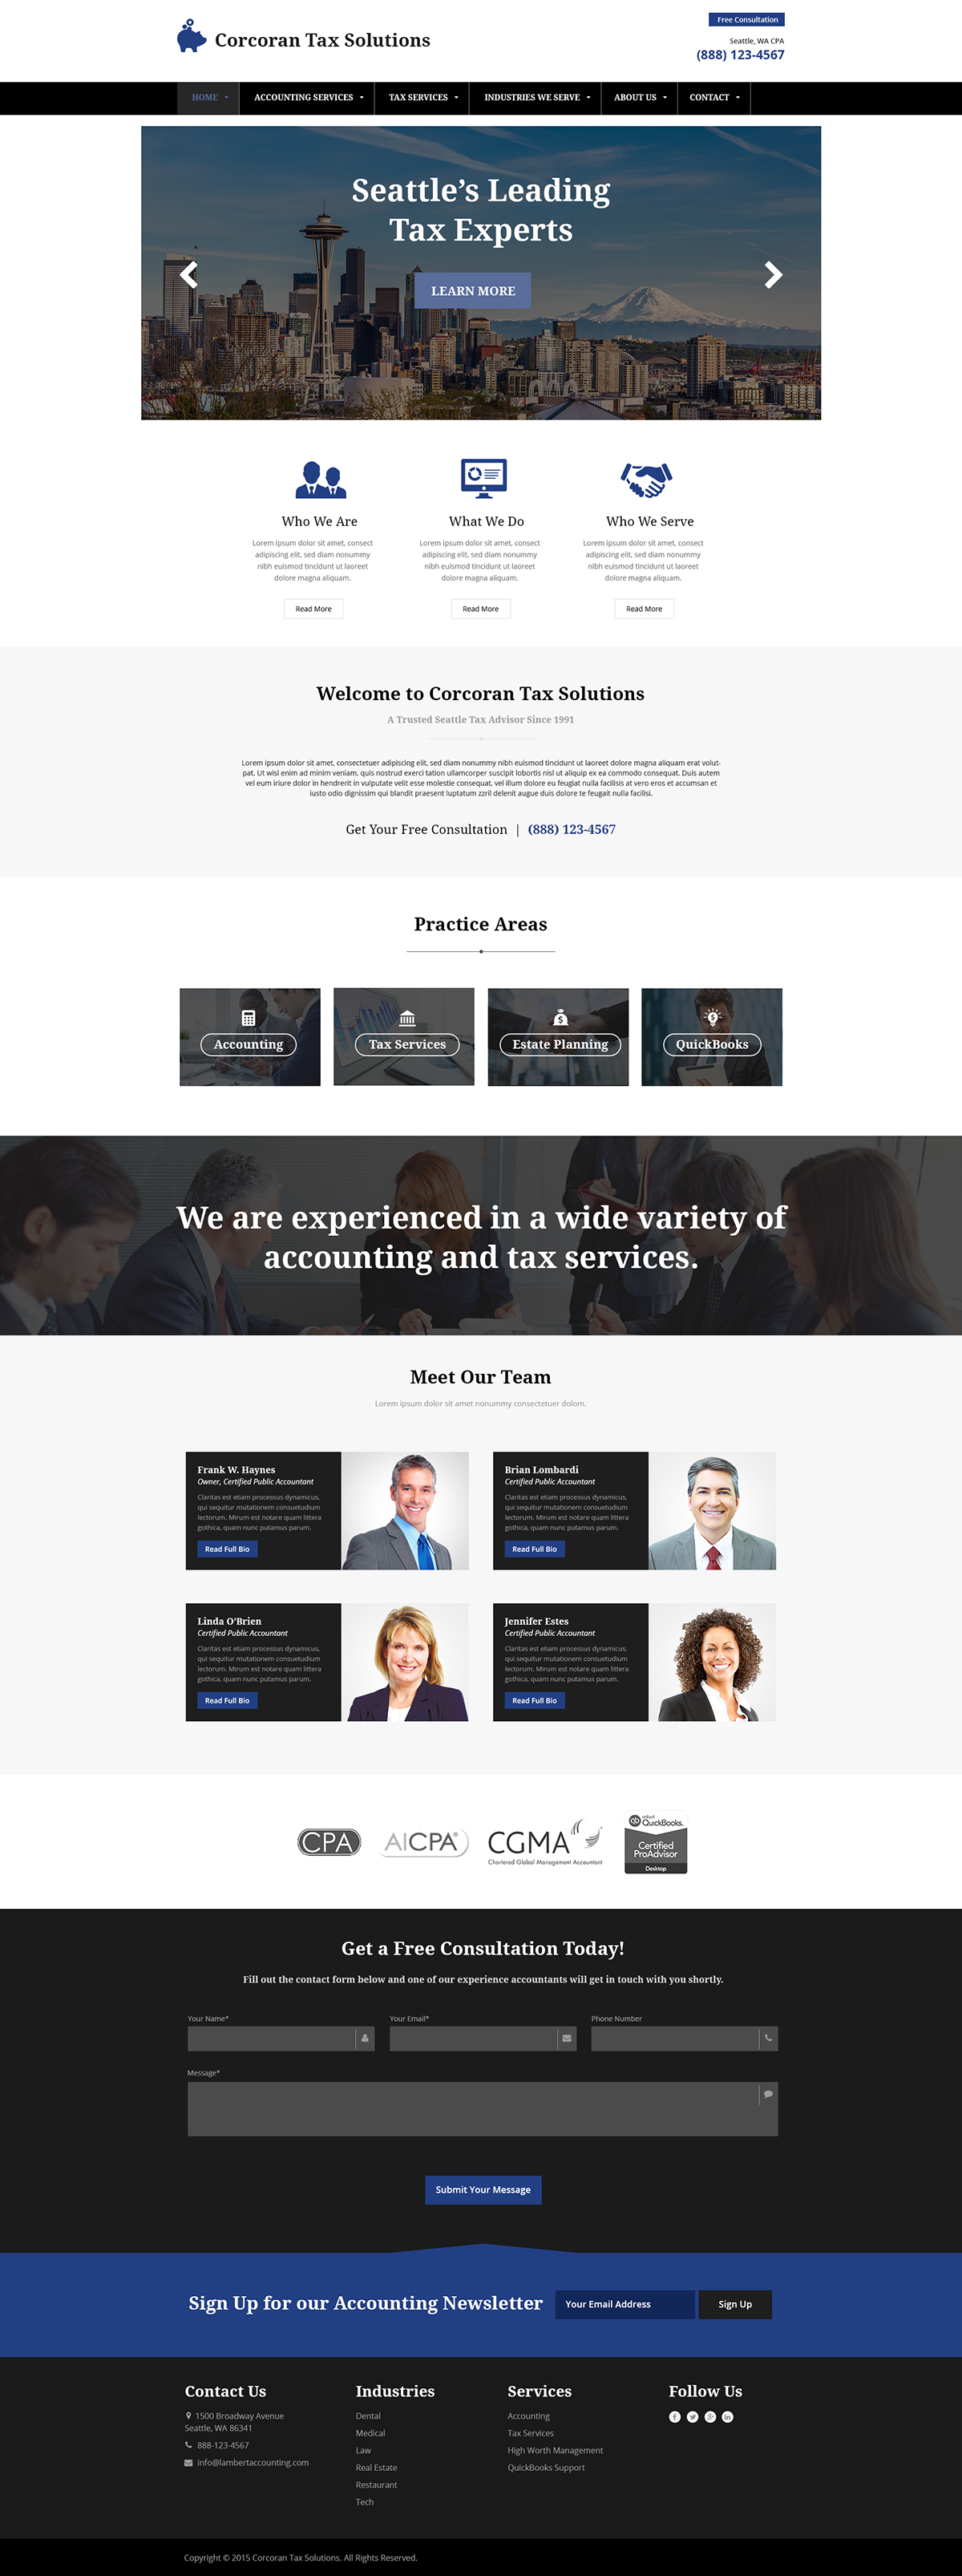 Bootstrap Theme, Multipurpose Website Template on Behance